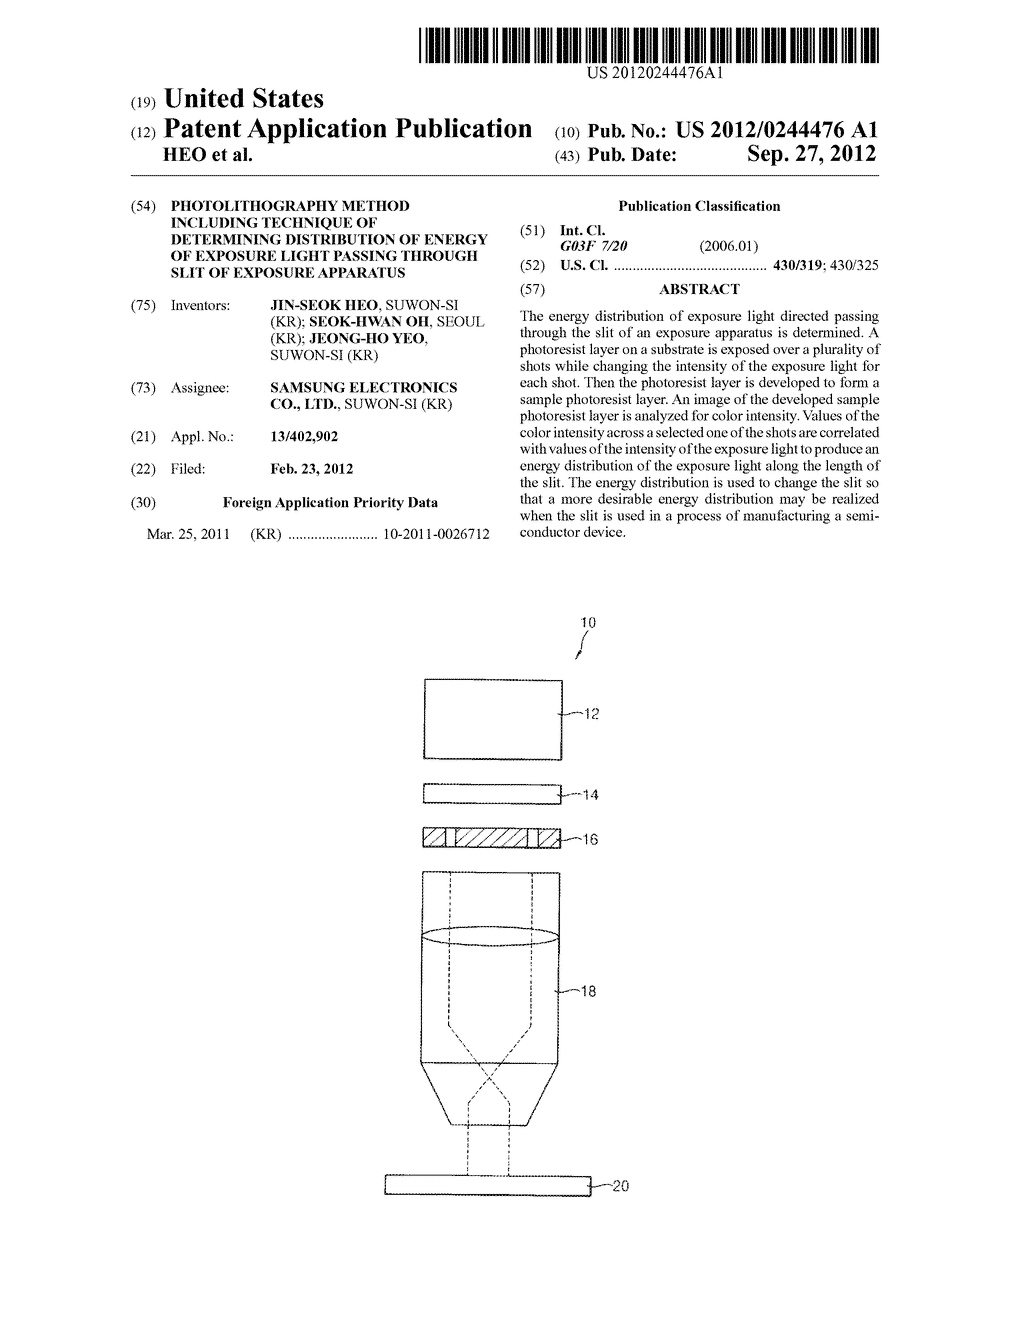 PHOTOLITHOGRAPHY METHOD INCLUDING TECHNIQUE OF DETERMINING DISTRIBUTION OF     ENERGY OF EXPOSURE LIGHT PASSING THROUGH SLIT OF EXPOSURE APPARATUS - diagram, schematic, and image 01